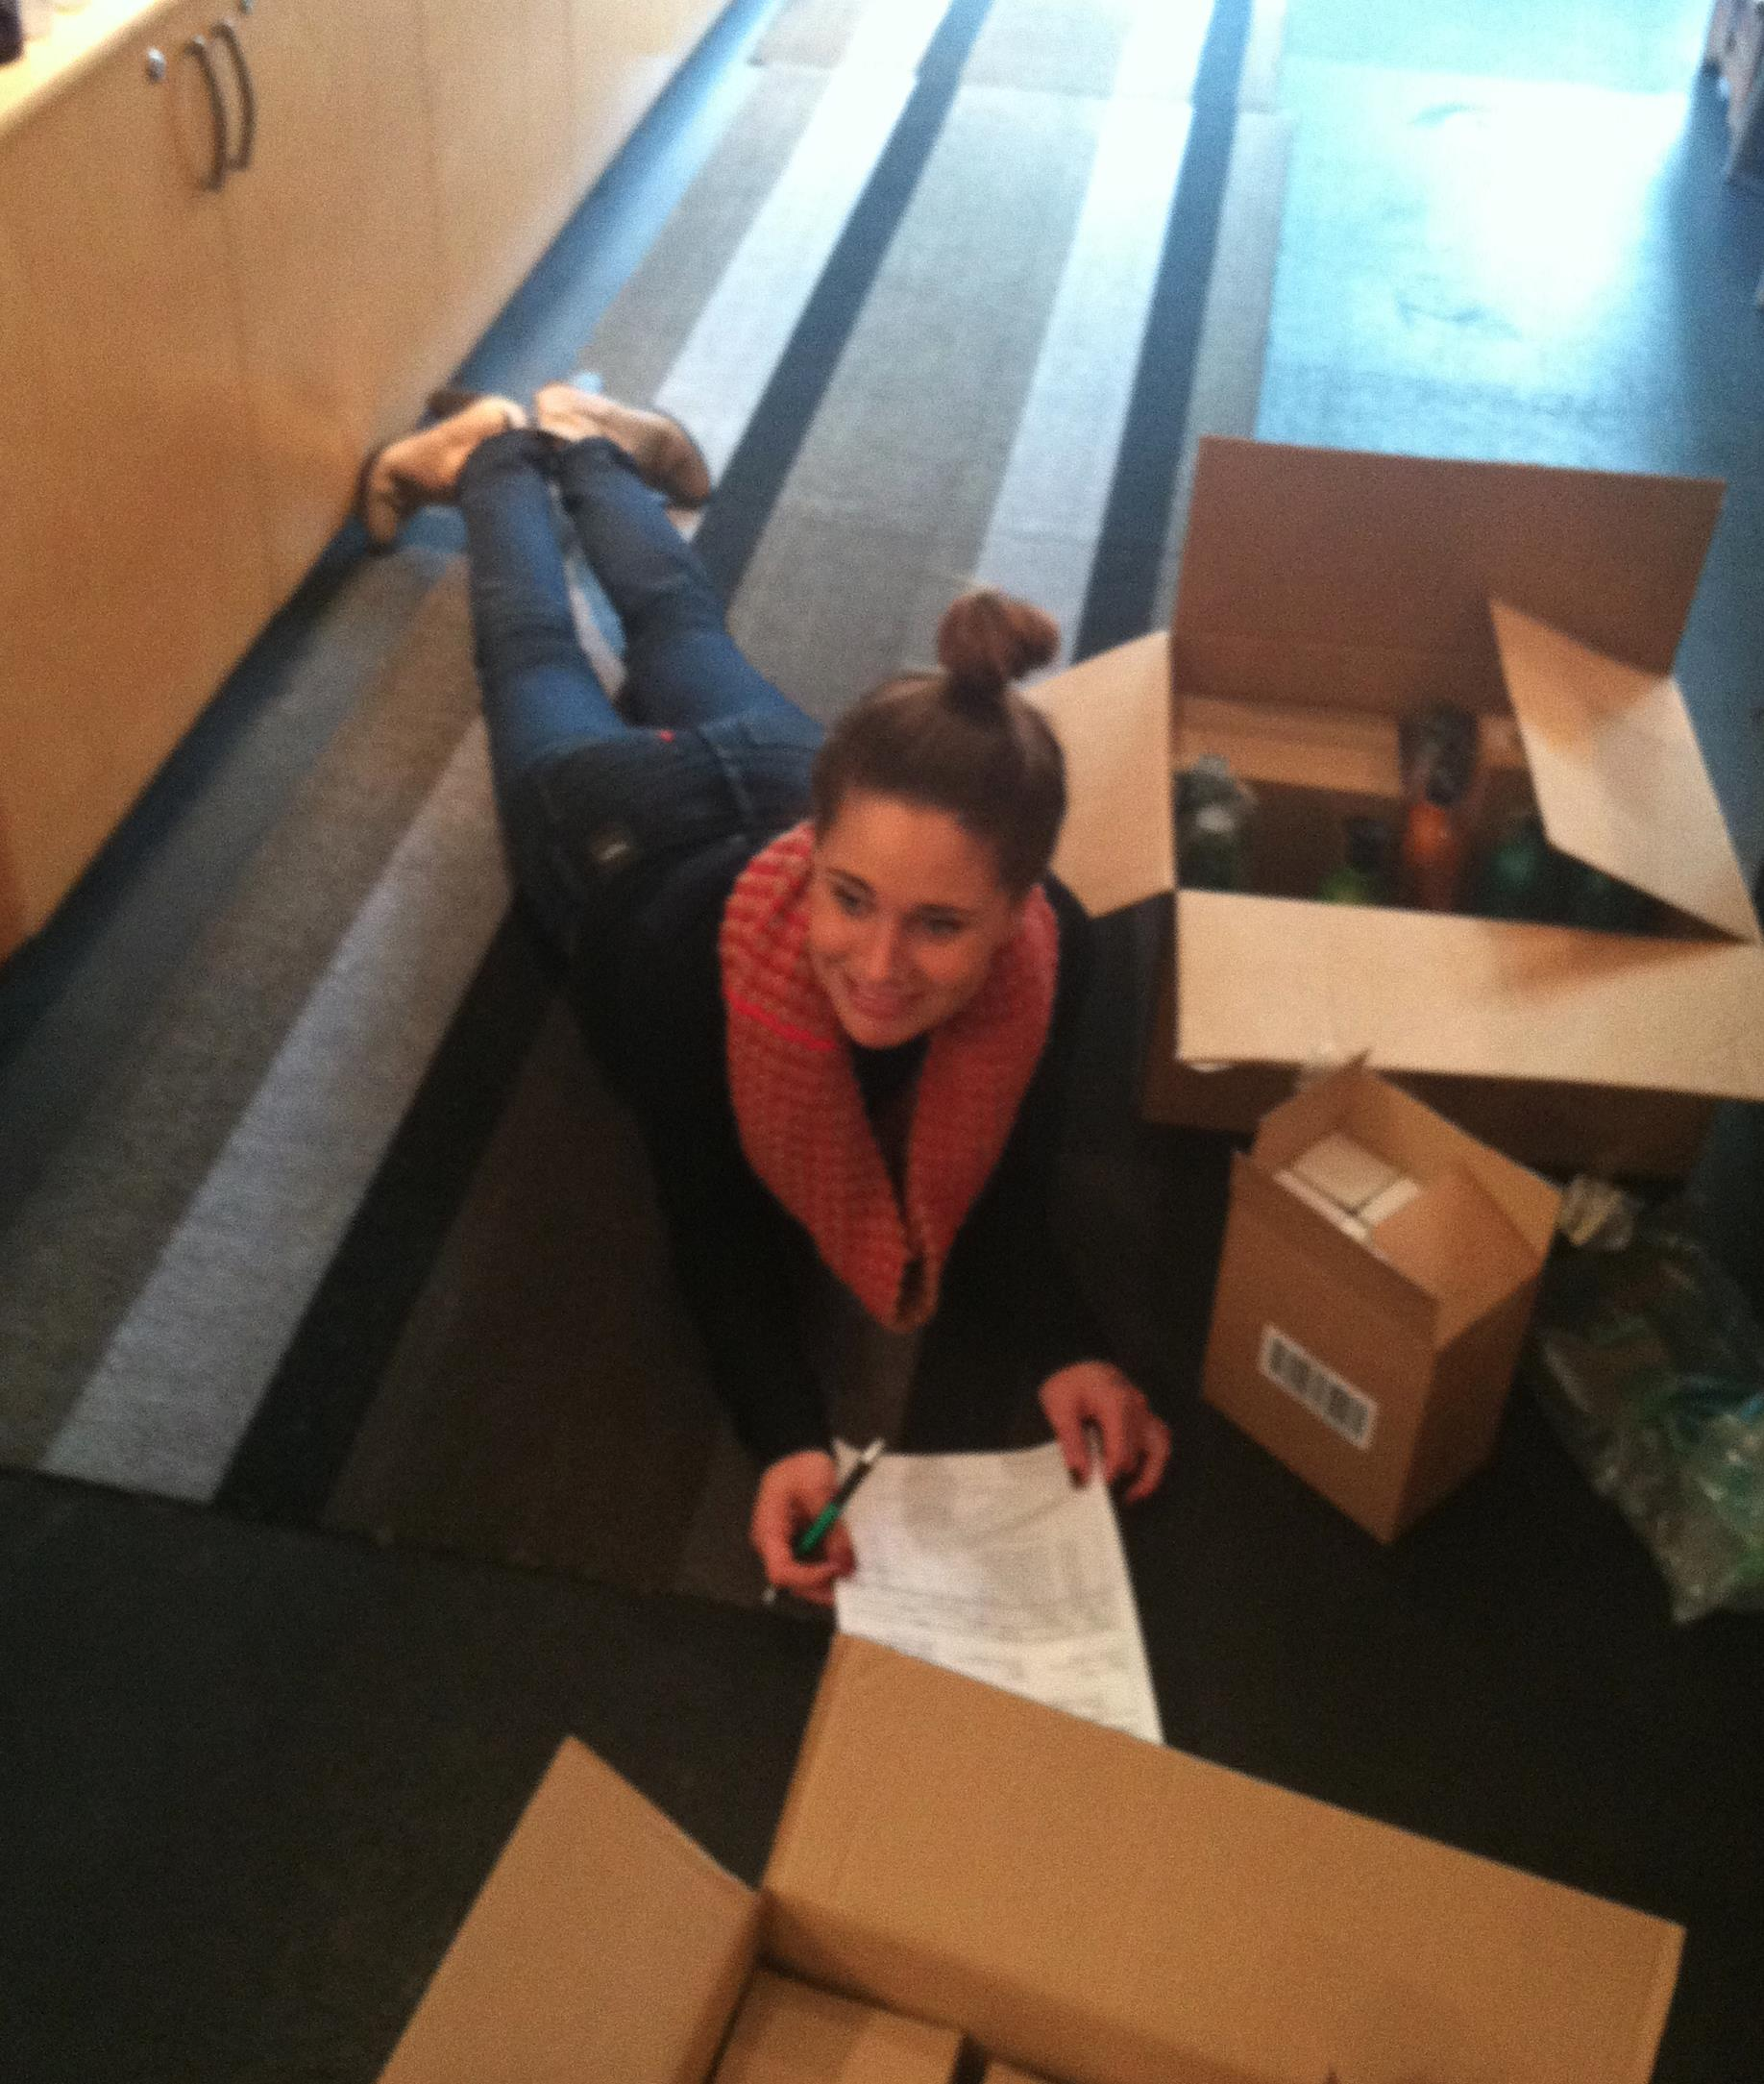 Allie Meyer from Buzz Salon in Iowa City Iowa unpacks a coveted new shipment of Shu Uemura.